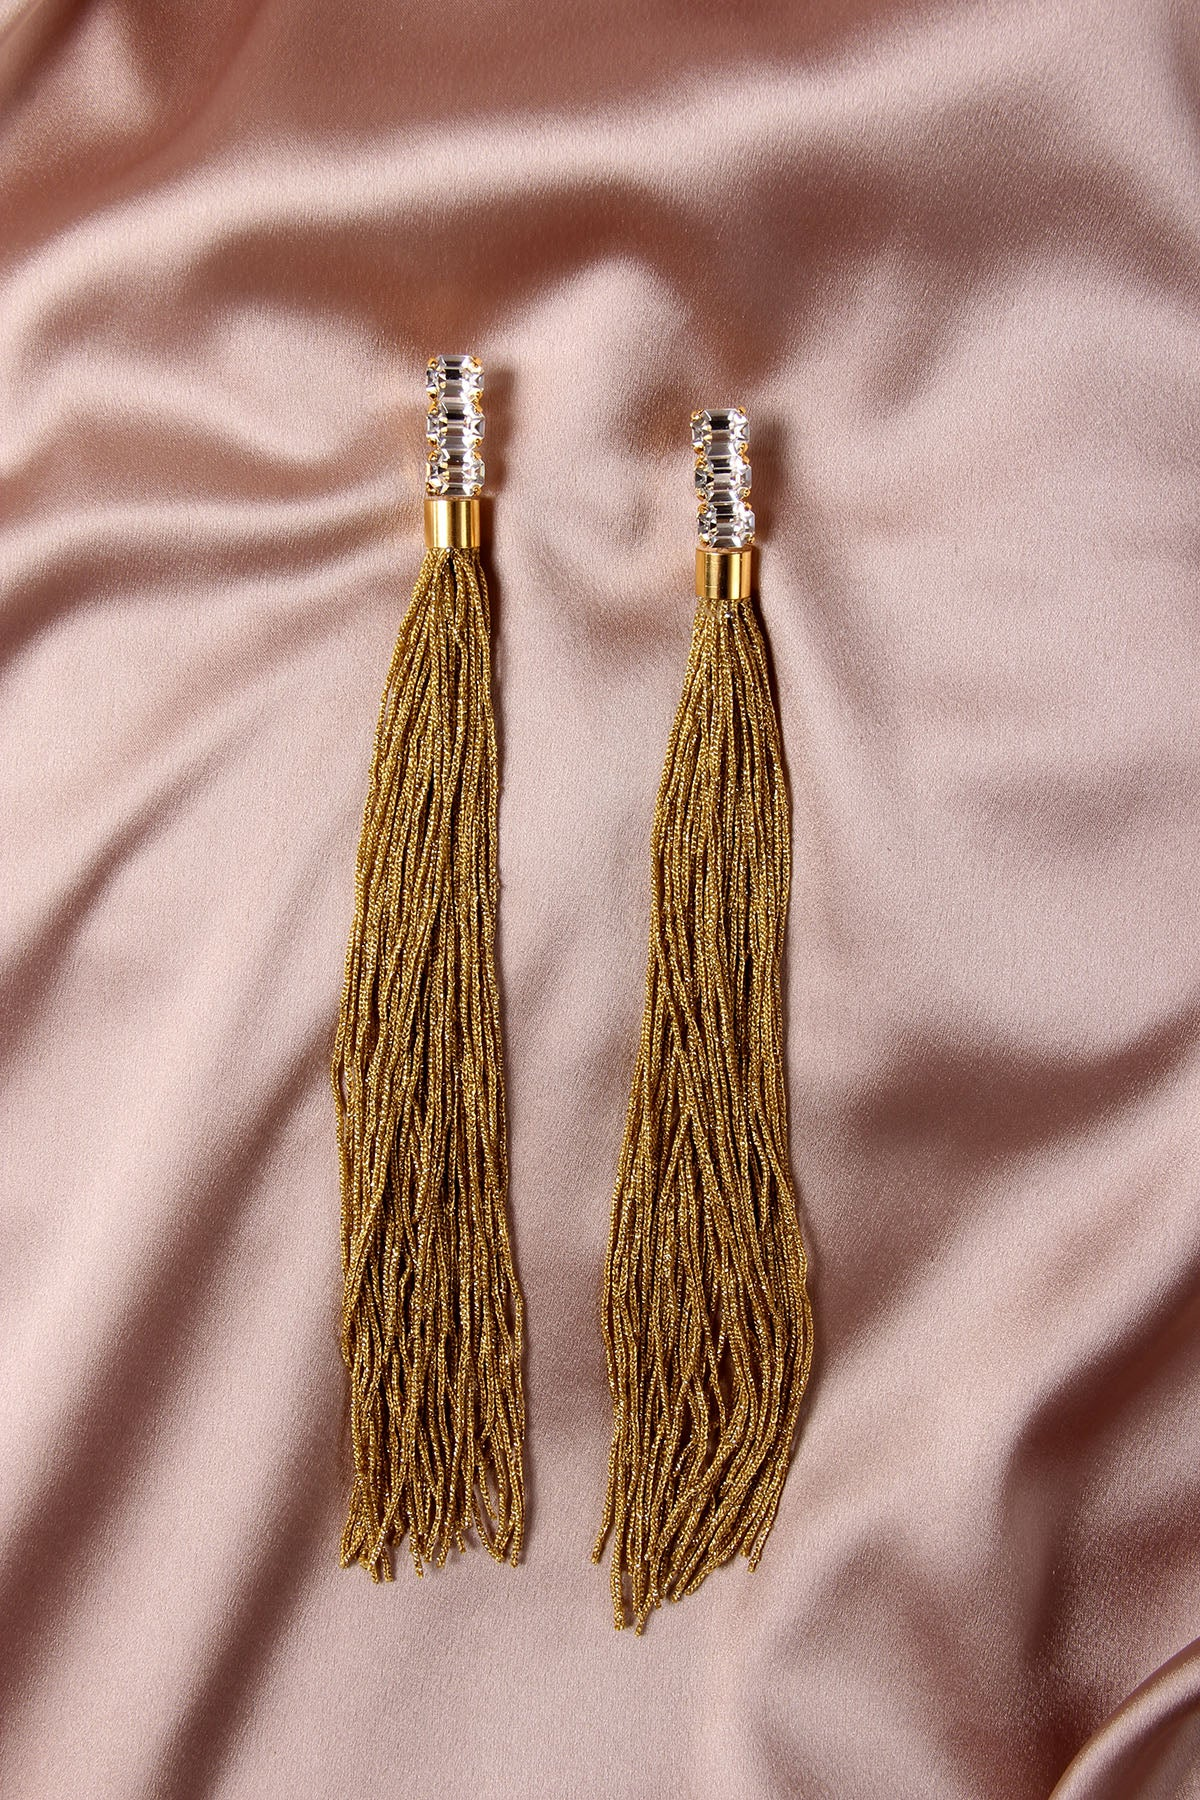 THE WEEPING SOIL GOLD EARRINGS